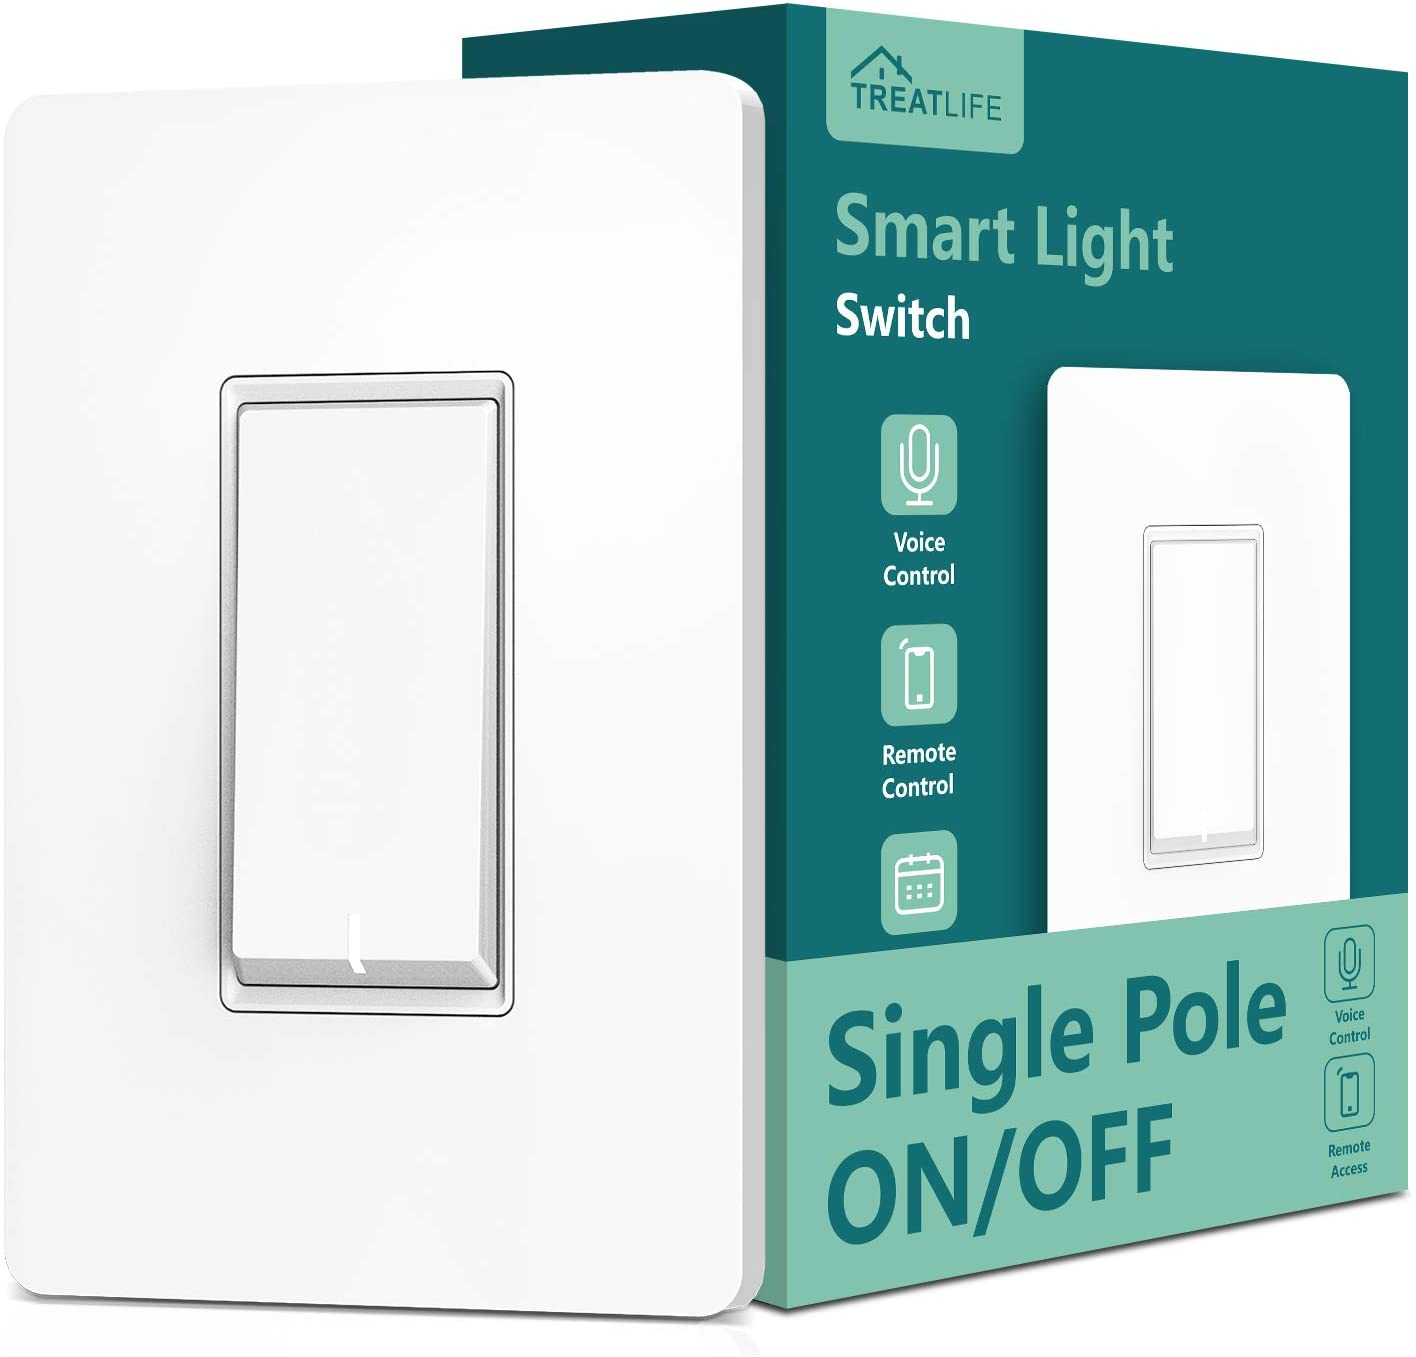 Single Pole Treatlife Smart Light Switch, Neutral Wire Required, 2.4Ghz Wi-Fi Light Switch, Works with Alexa and Google Assistant, Schedule, Remote Control, ETL Listed - -